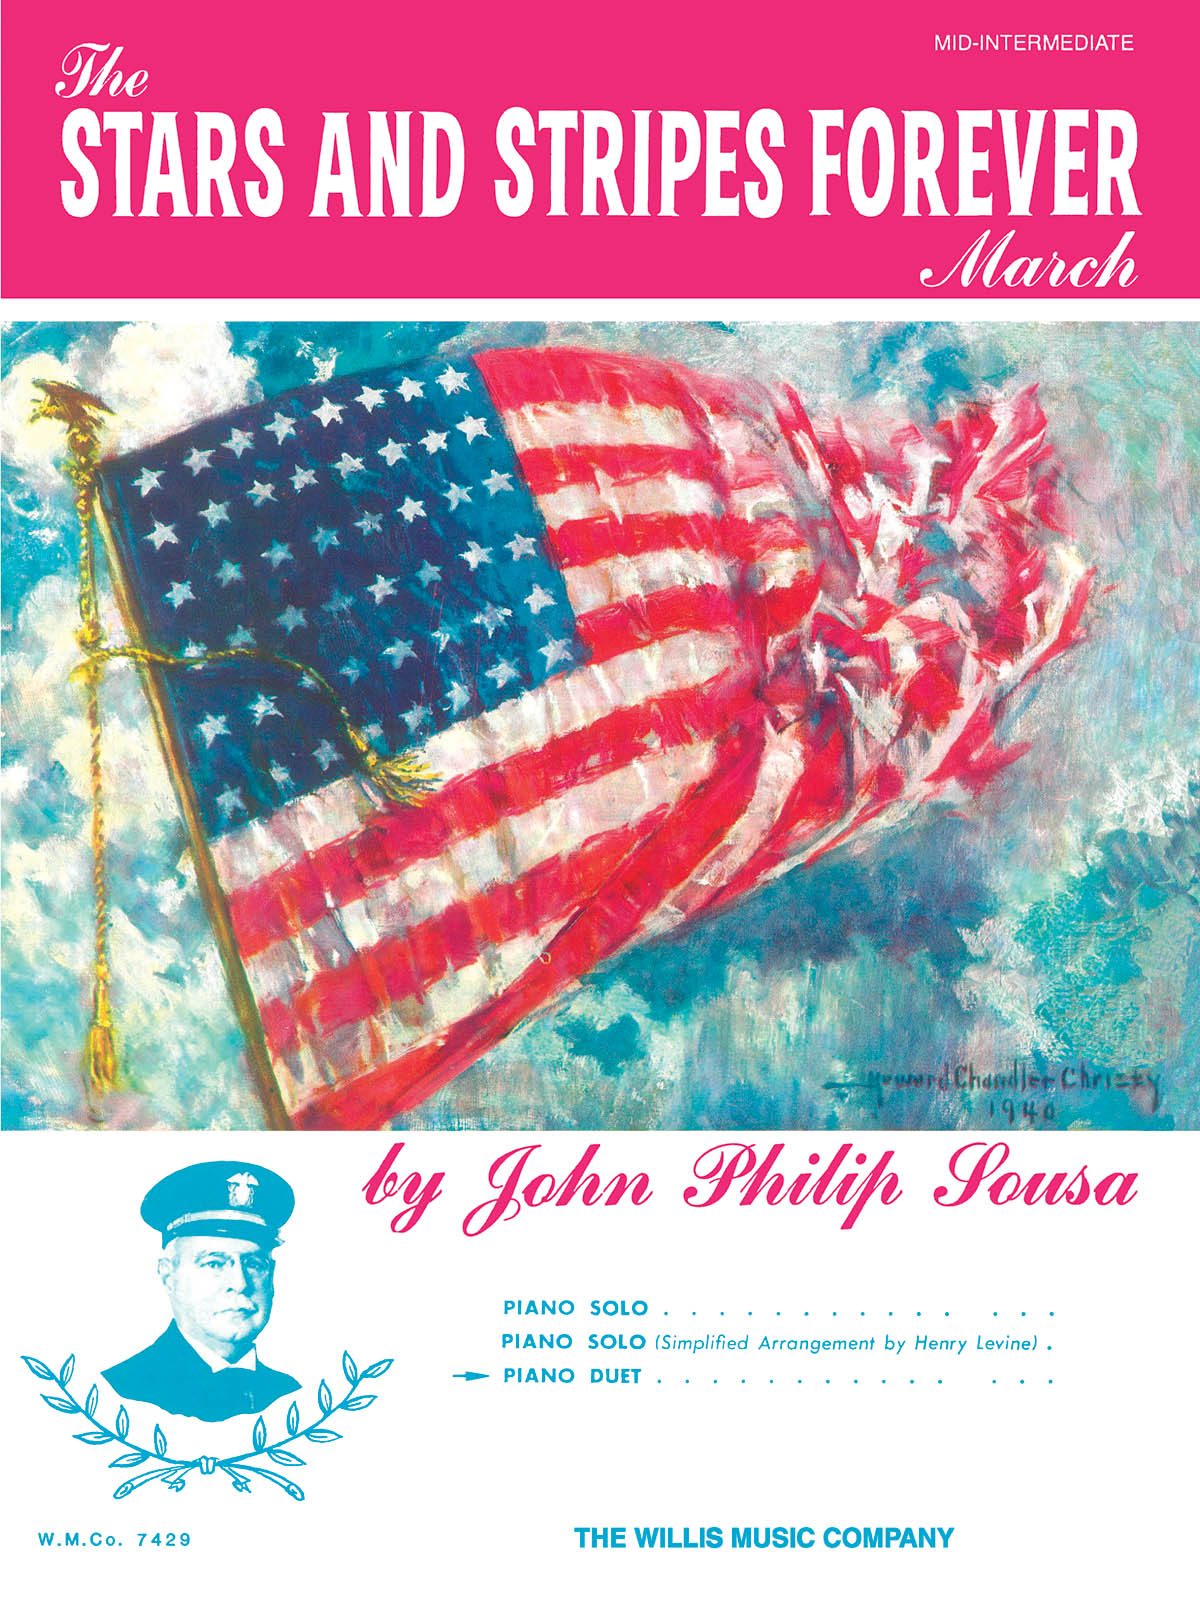 John Philip Sousa: The Stars and Stripes Forever March: Piano: Instrumental